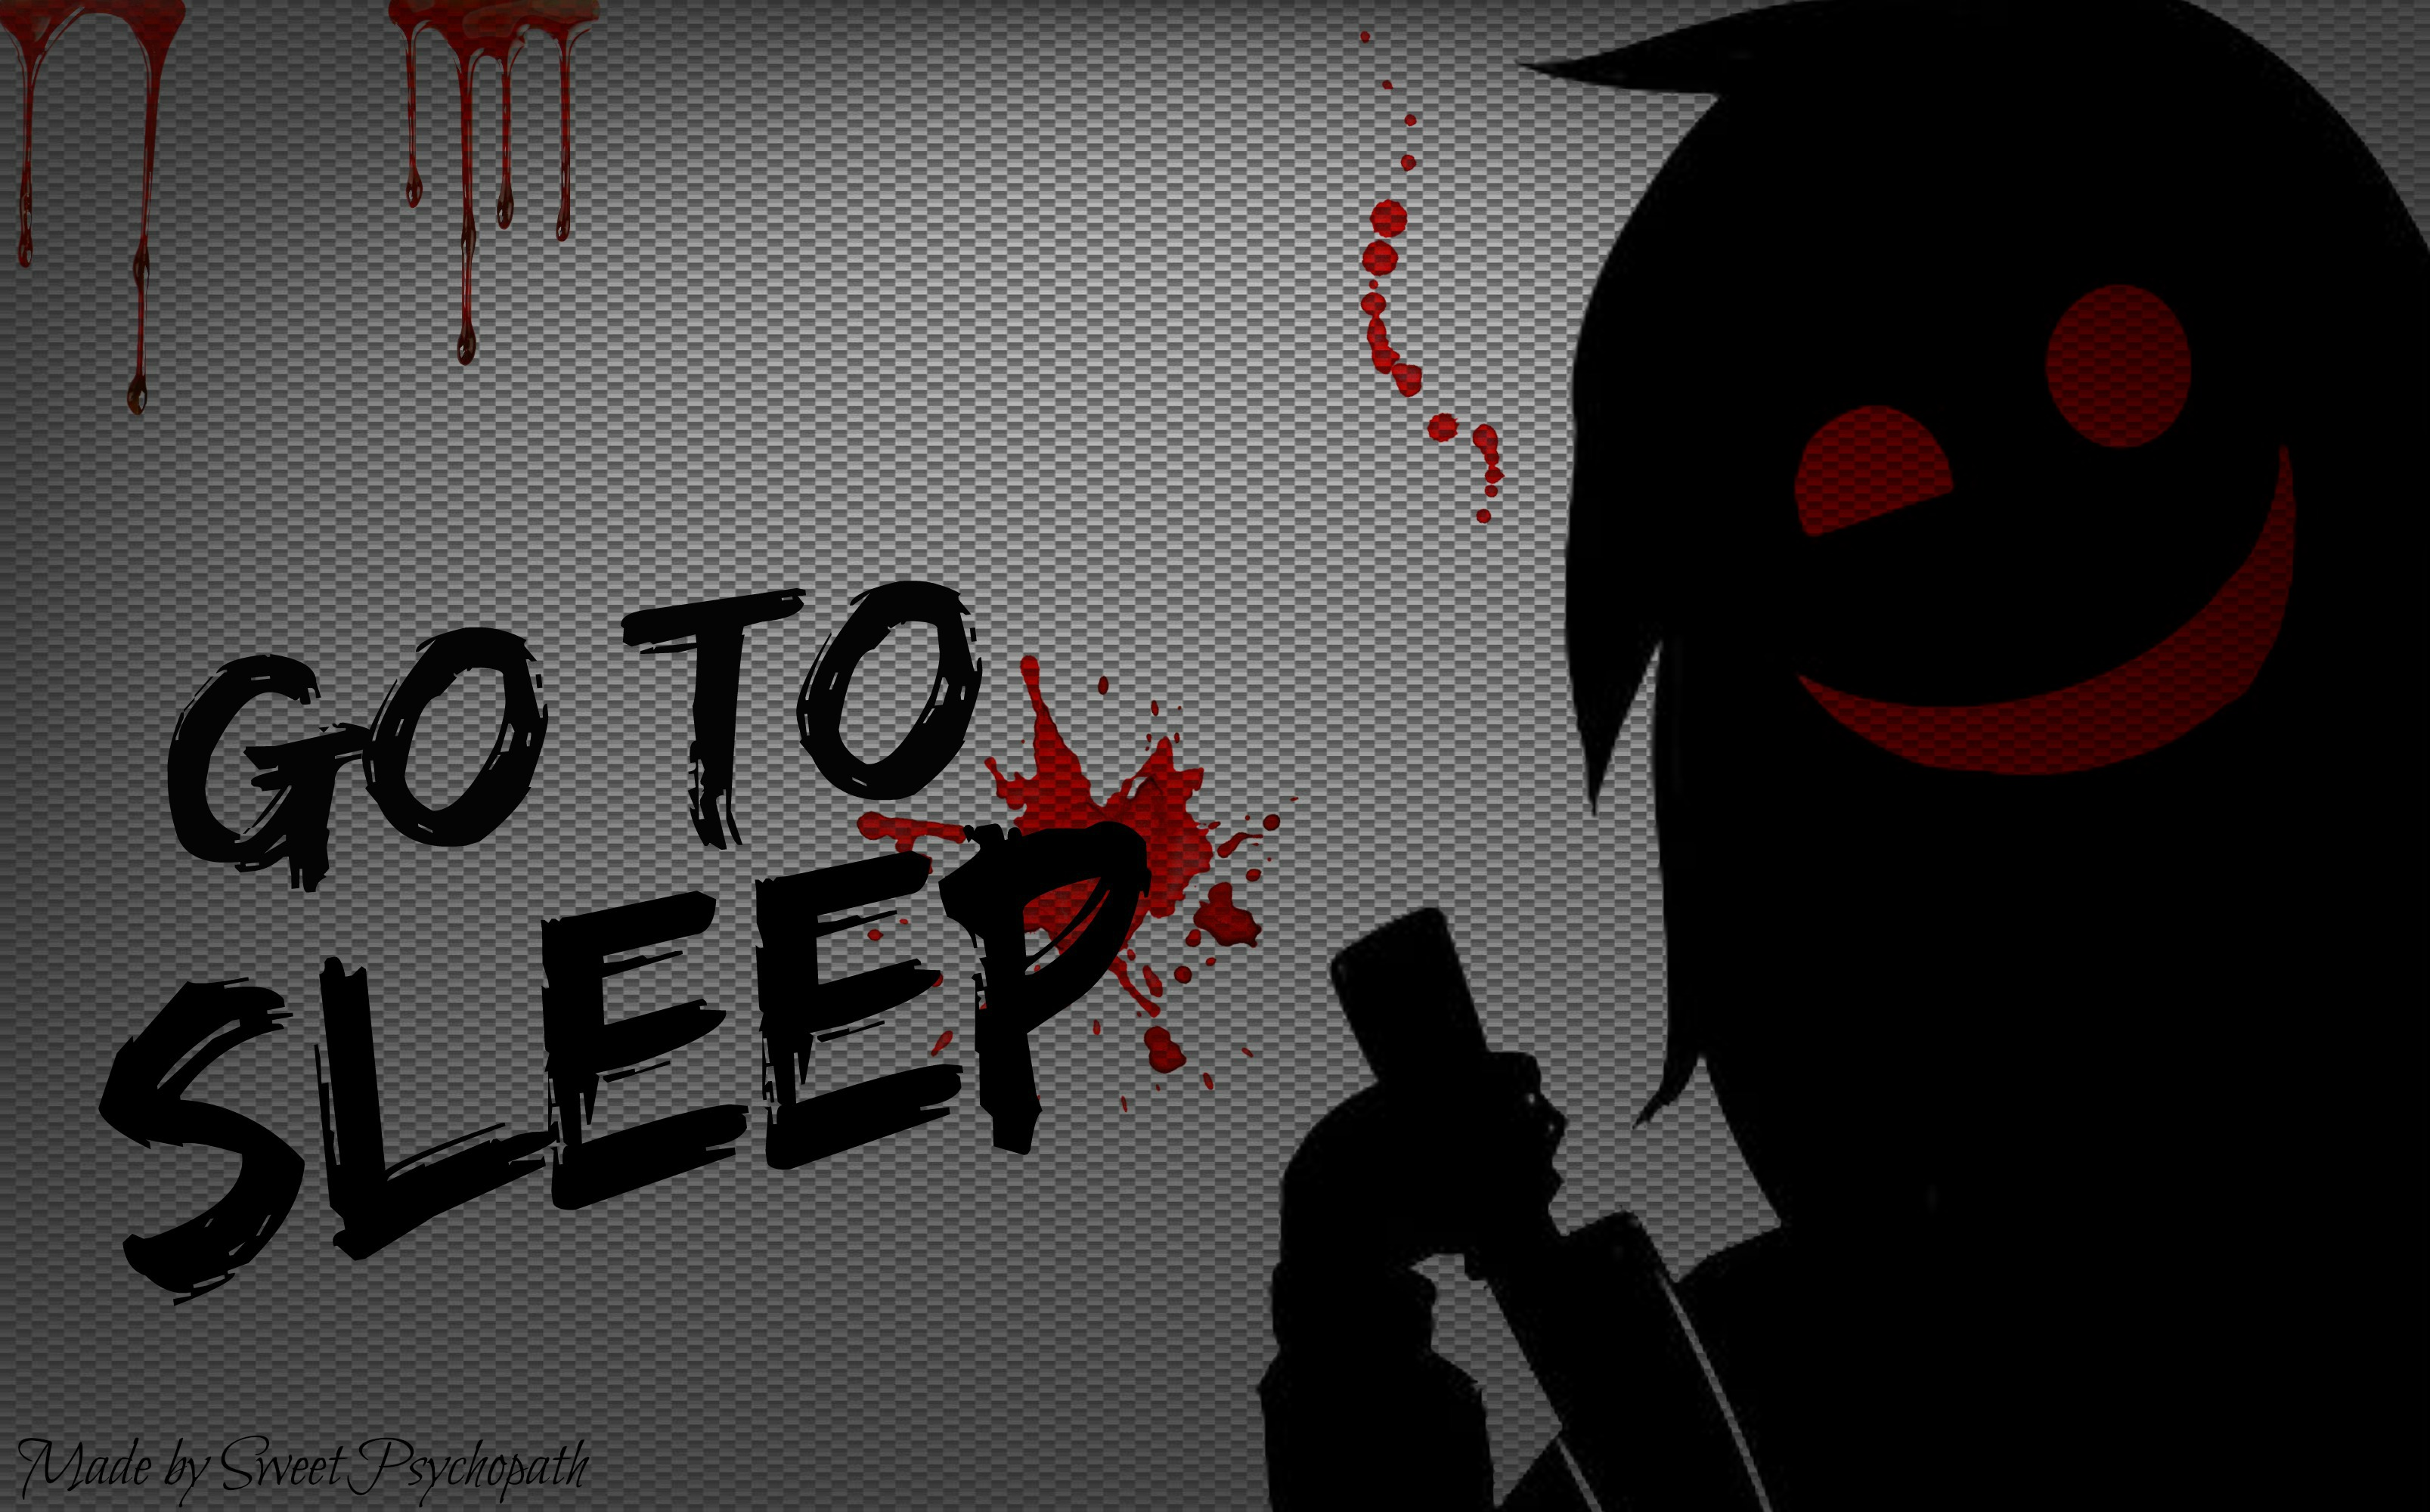 Jeff The Killer Go To Sleep Wallpaper By Sweetpsychopath On